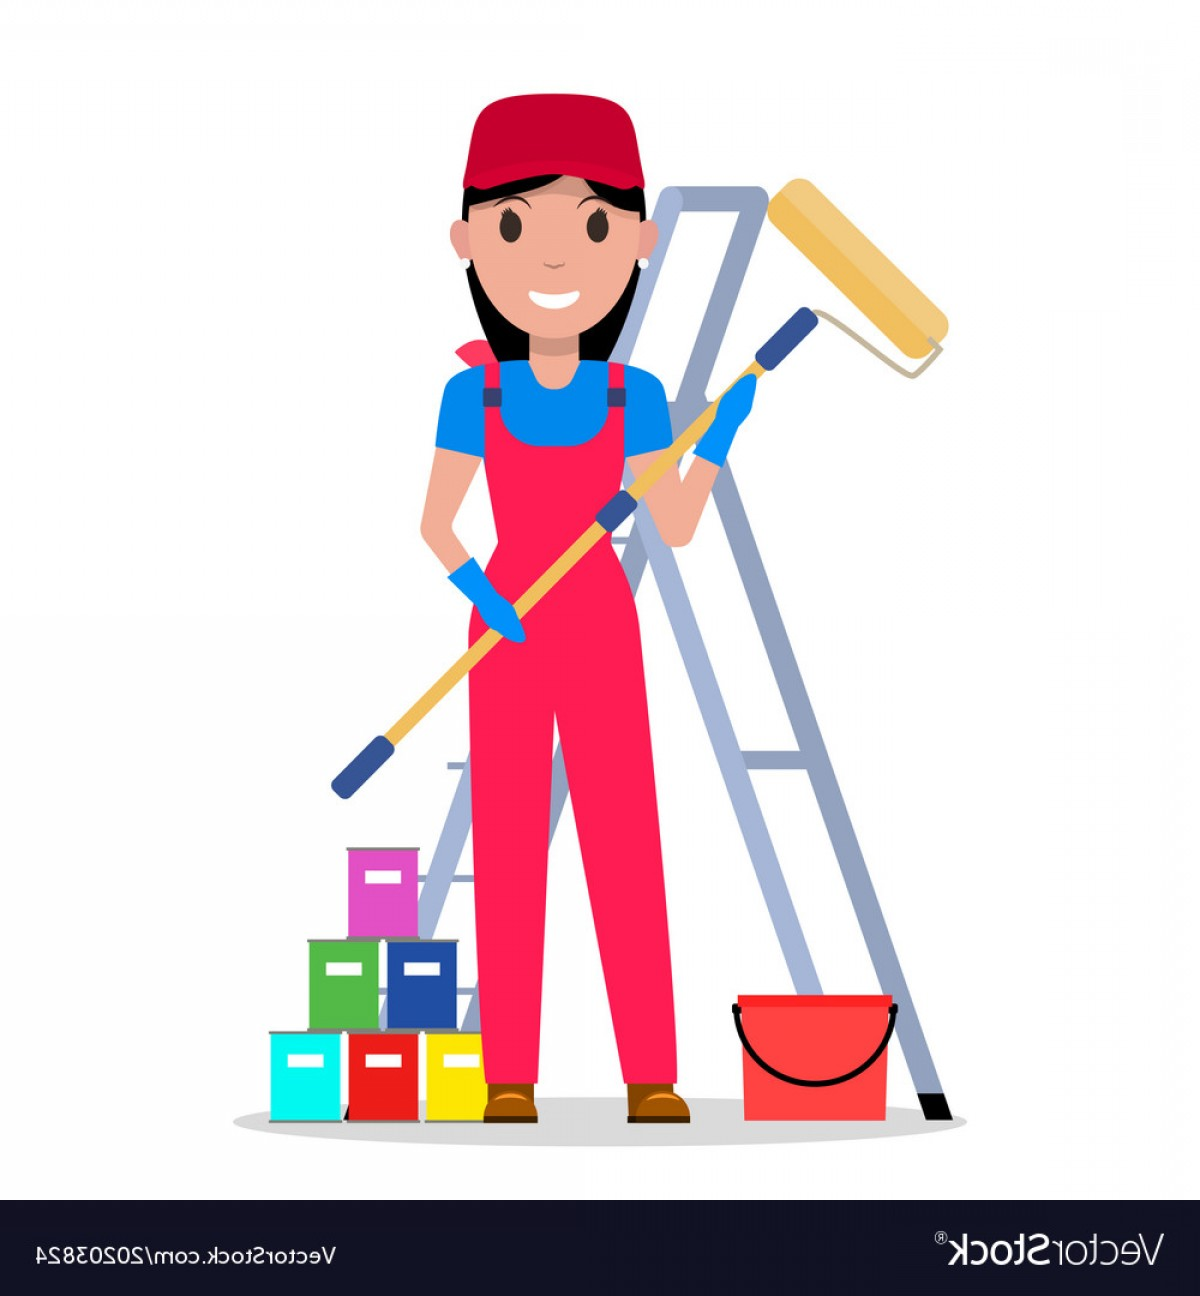 Woman Vector Toon Painter: Cartoon Woman Painter With Tools Painting Vector